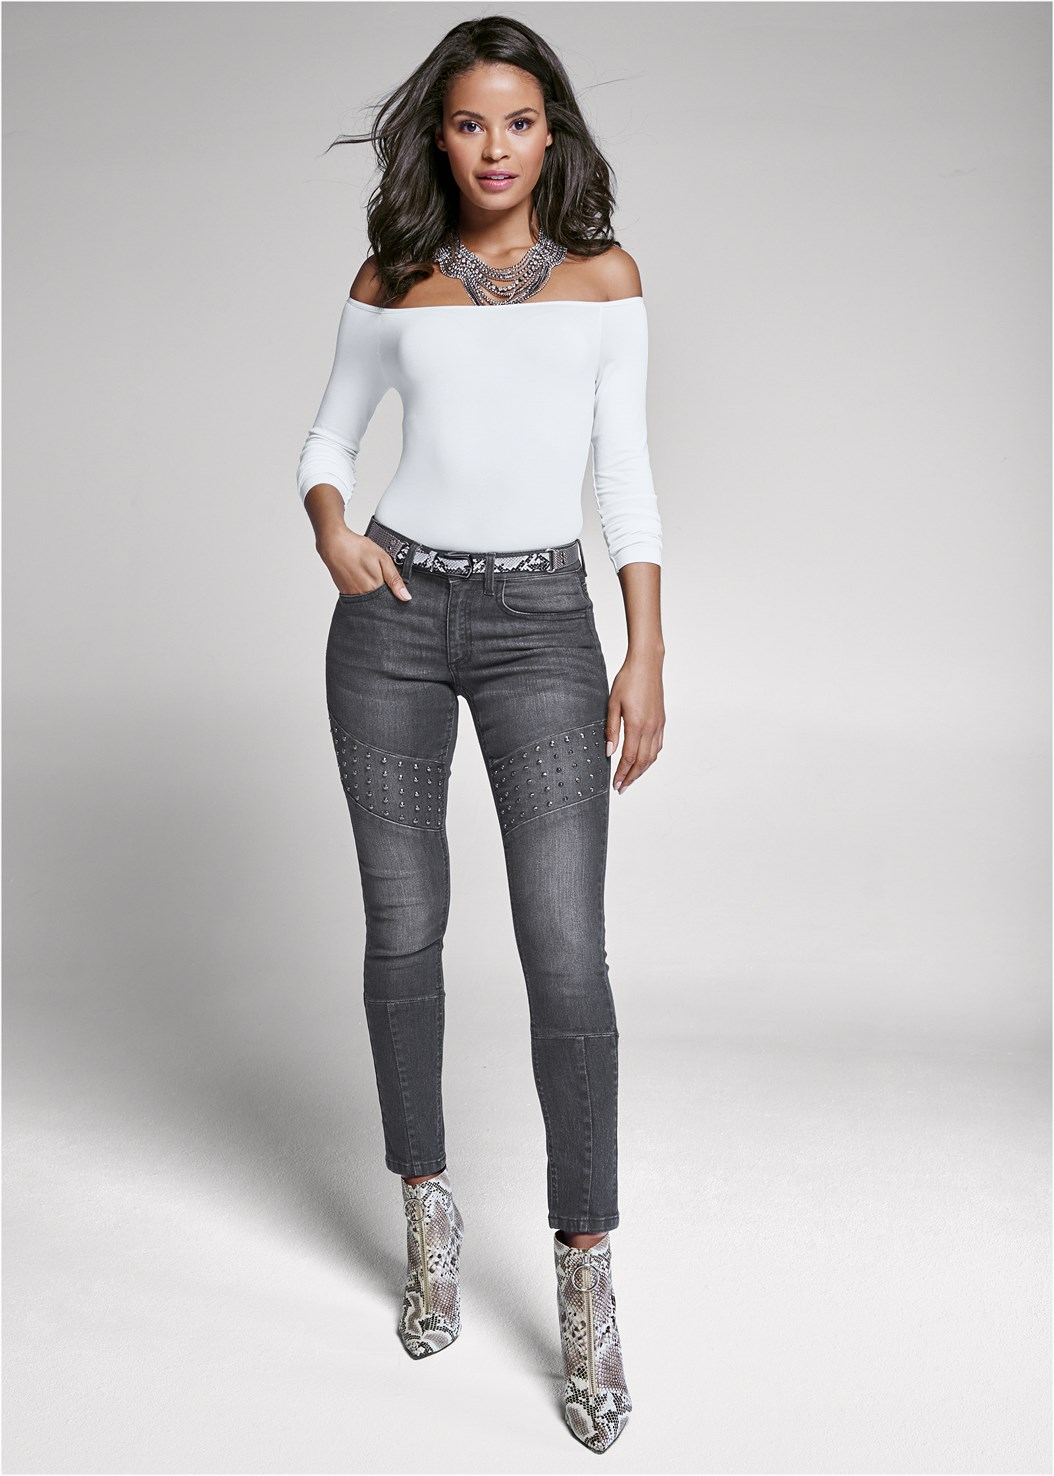 Stud Detail Skinny Jeans,Off The Shoulder Top,Strapless Bra With Geo Lace,Circle Detail Booties,Animal Print Mesh Belt